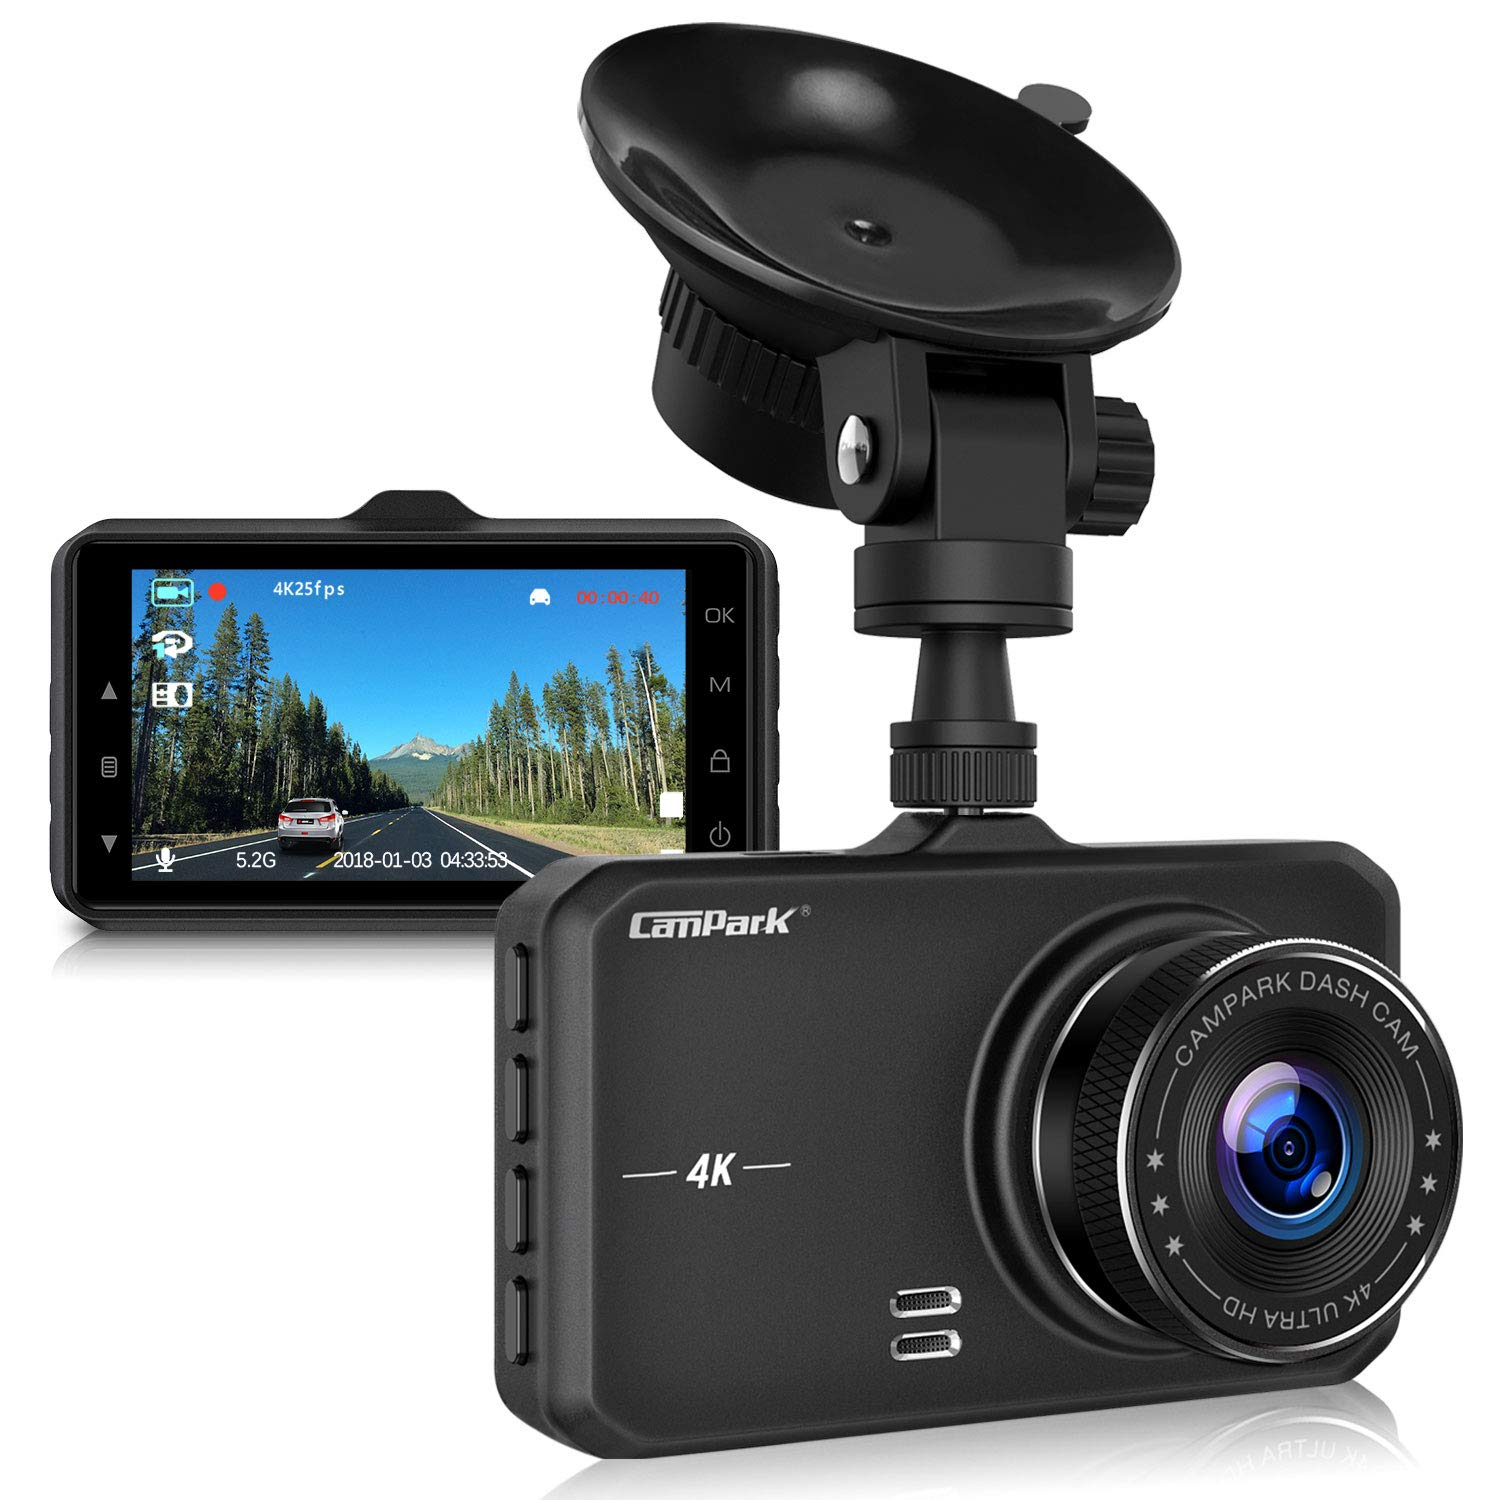 Campark Dash Cam 4K UHD DVR Driving Recorder Camera for Cars Dashboard with 3'' LCD 170°Wide Angle Night Vision G-Sensor Parking Monitor WDR Motion Detection by Campark